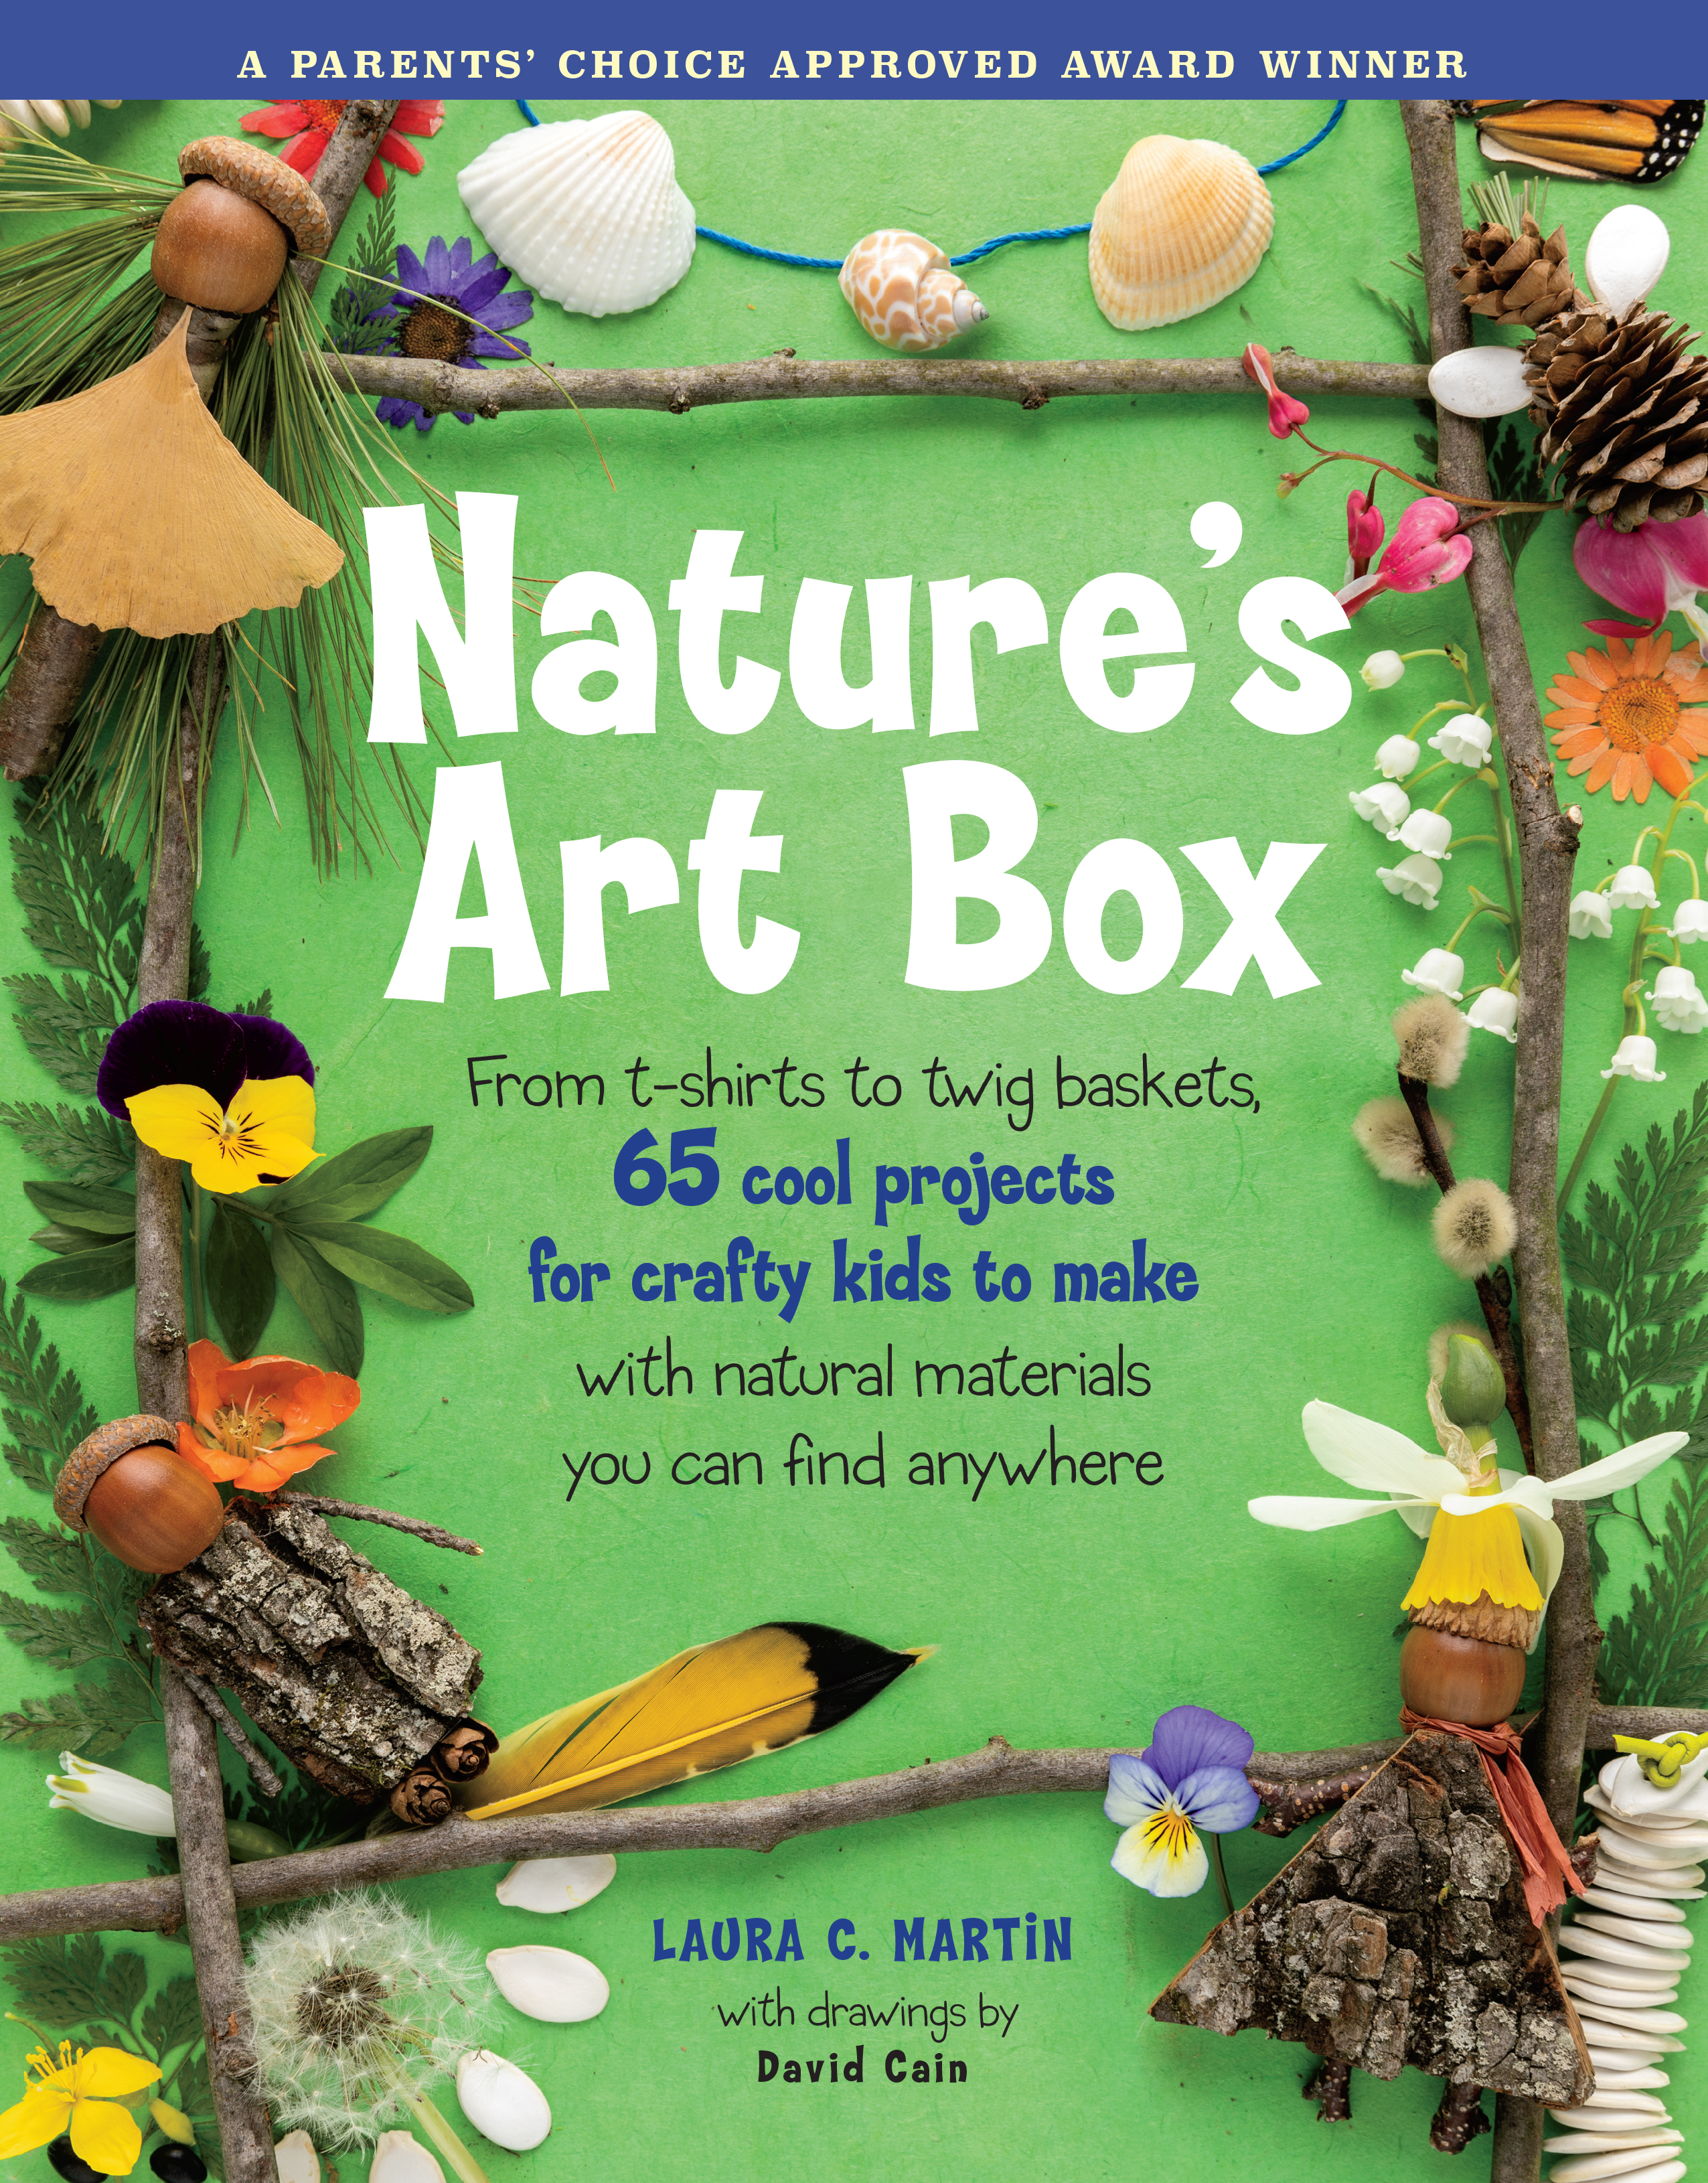 Nature's Art Box From t-shirts to twig baskets, 65 cool projects for crafty kids to make with natural materials you can find anywhere - Laura C. Martin